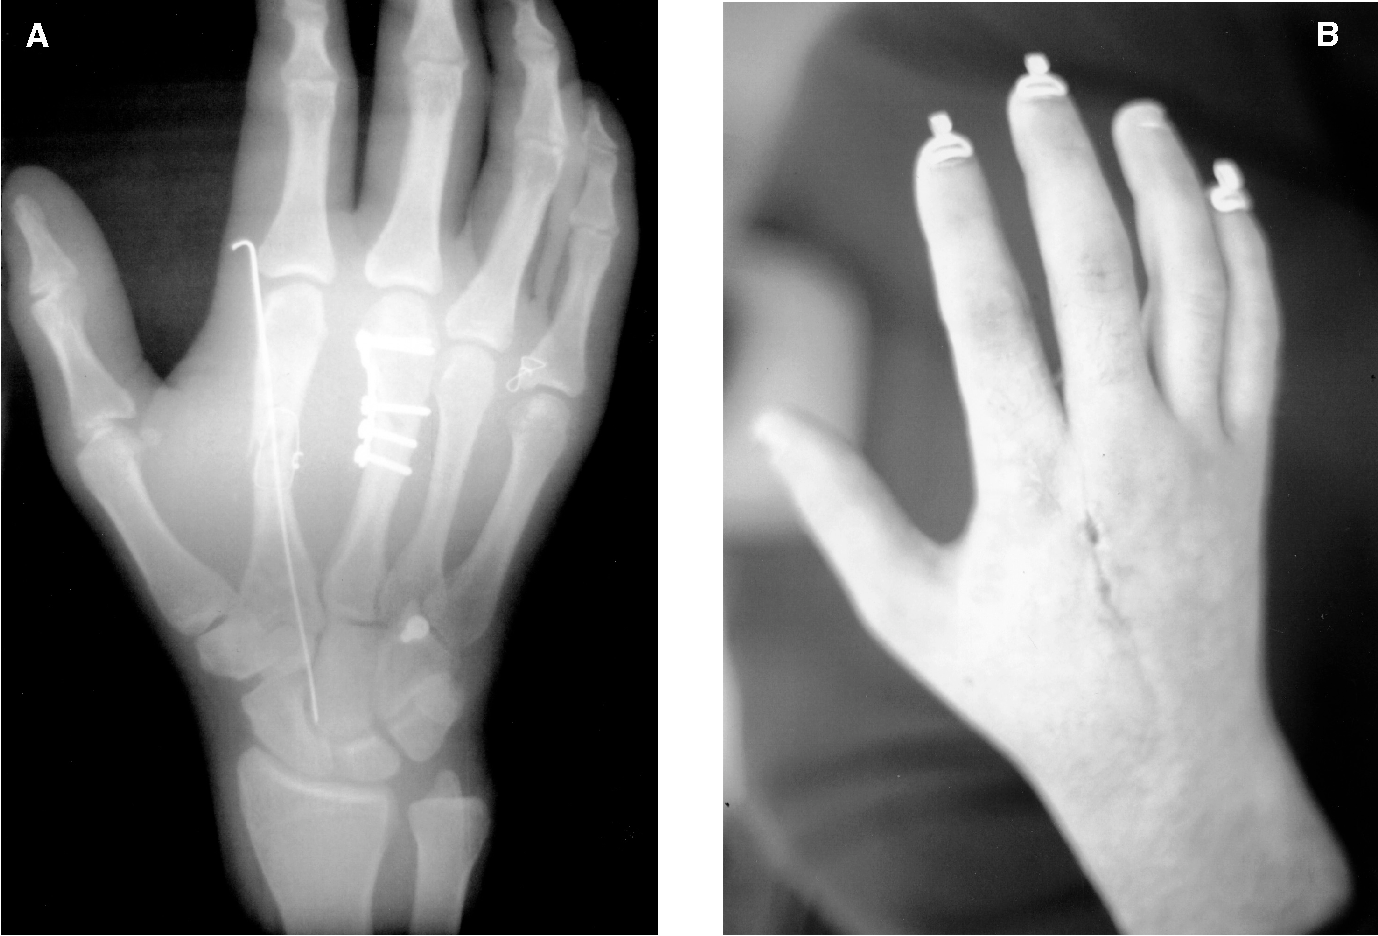 Fracture healing: bone healing, fracture management, and current concepts  related to the hand. - Semantic Scholar